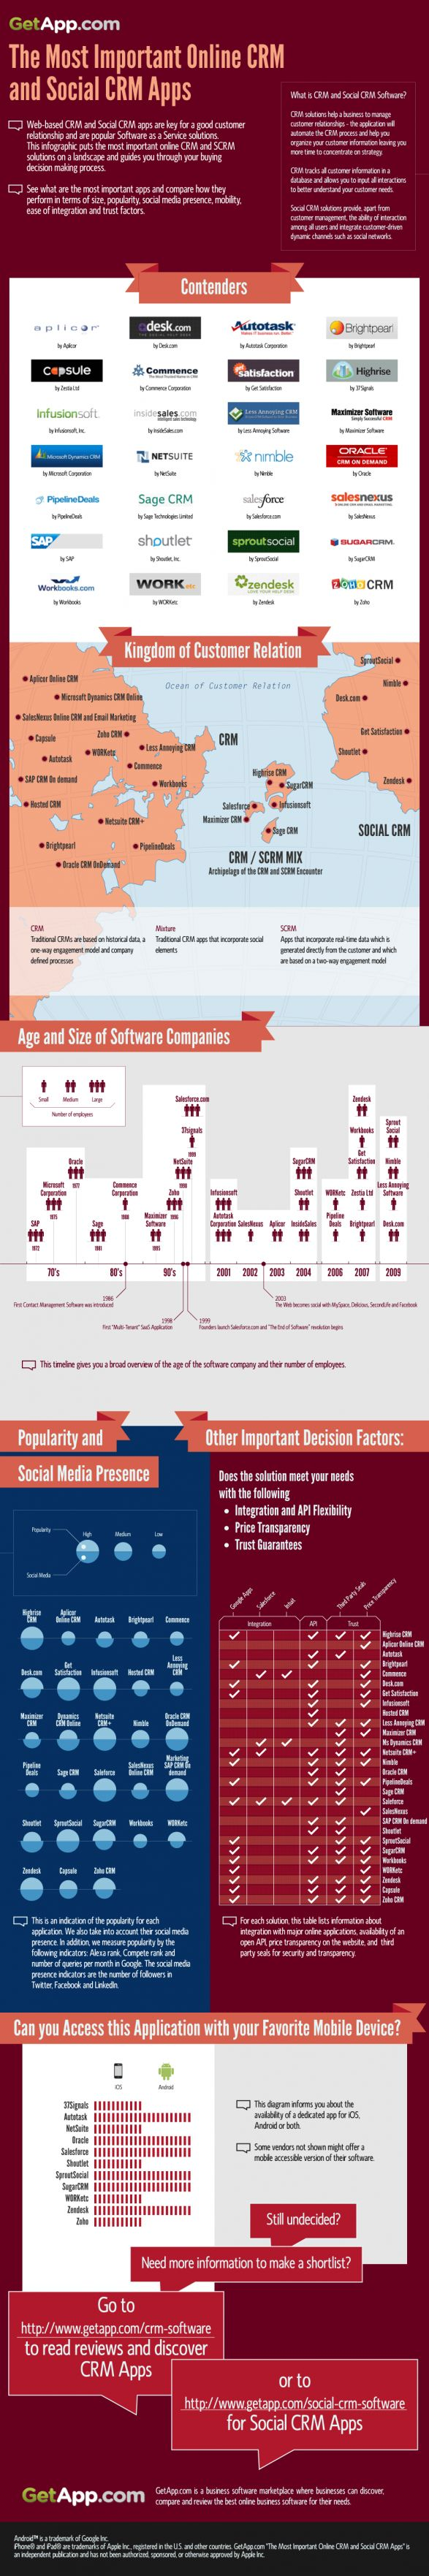 http://www.webanalyticsworld.net/2012/03/web-based-crm-and-social-media-crm-infographic.html CRM and Social Media CRM [Infographic]